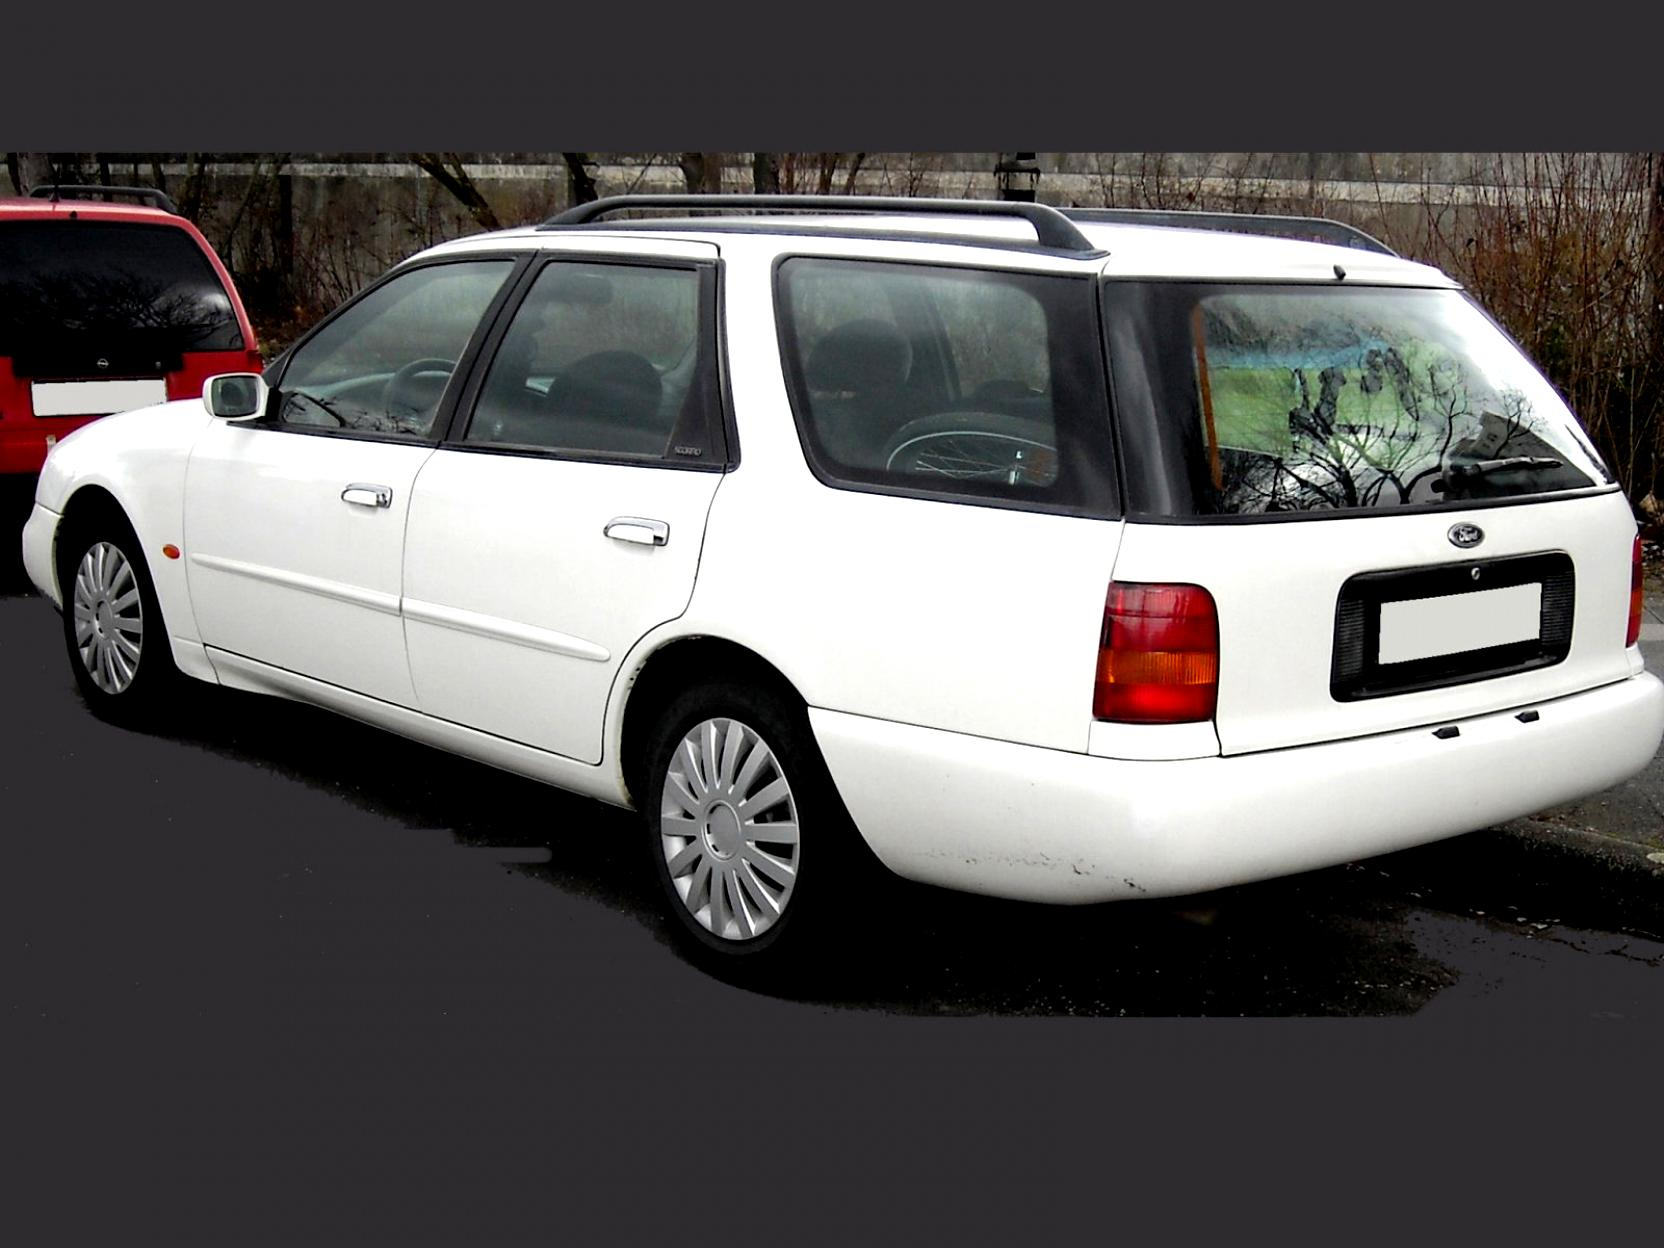 Ford Scorpio Wagon 1994 #31